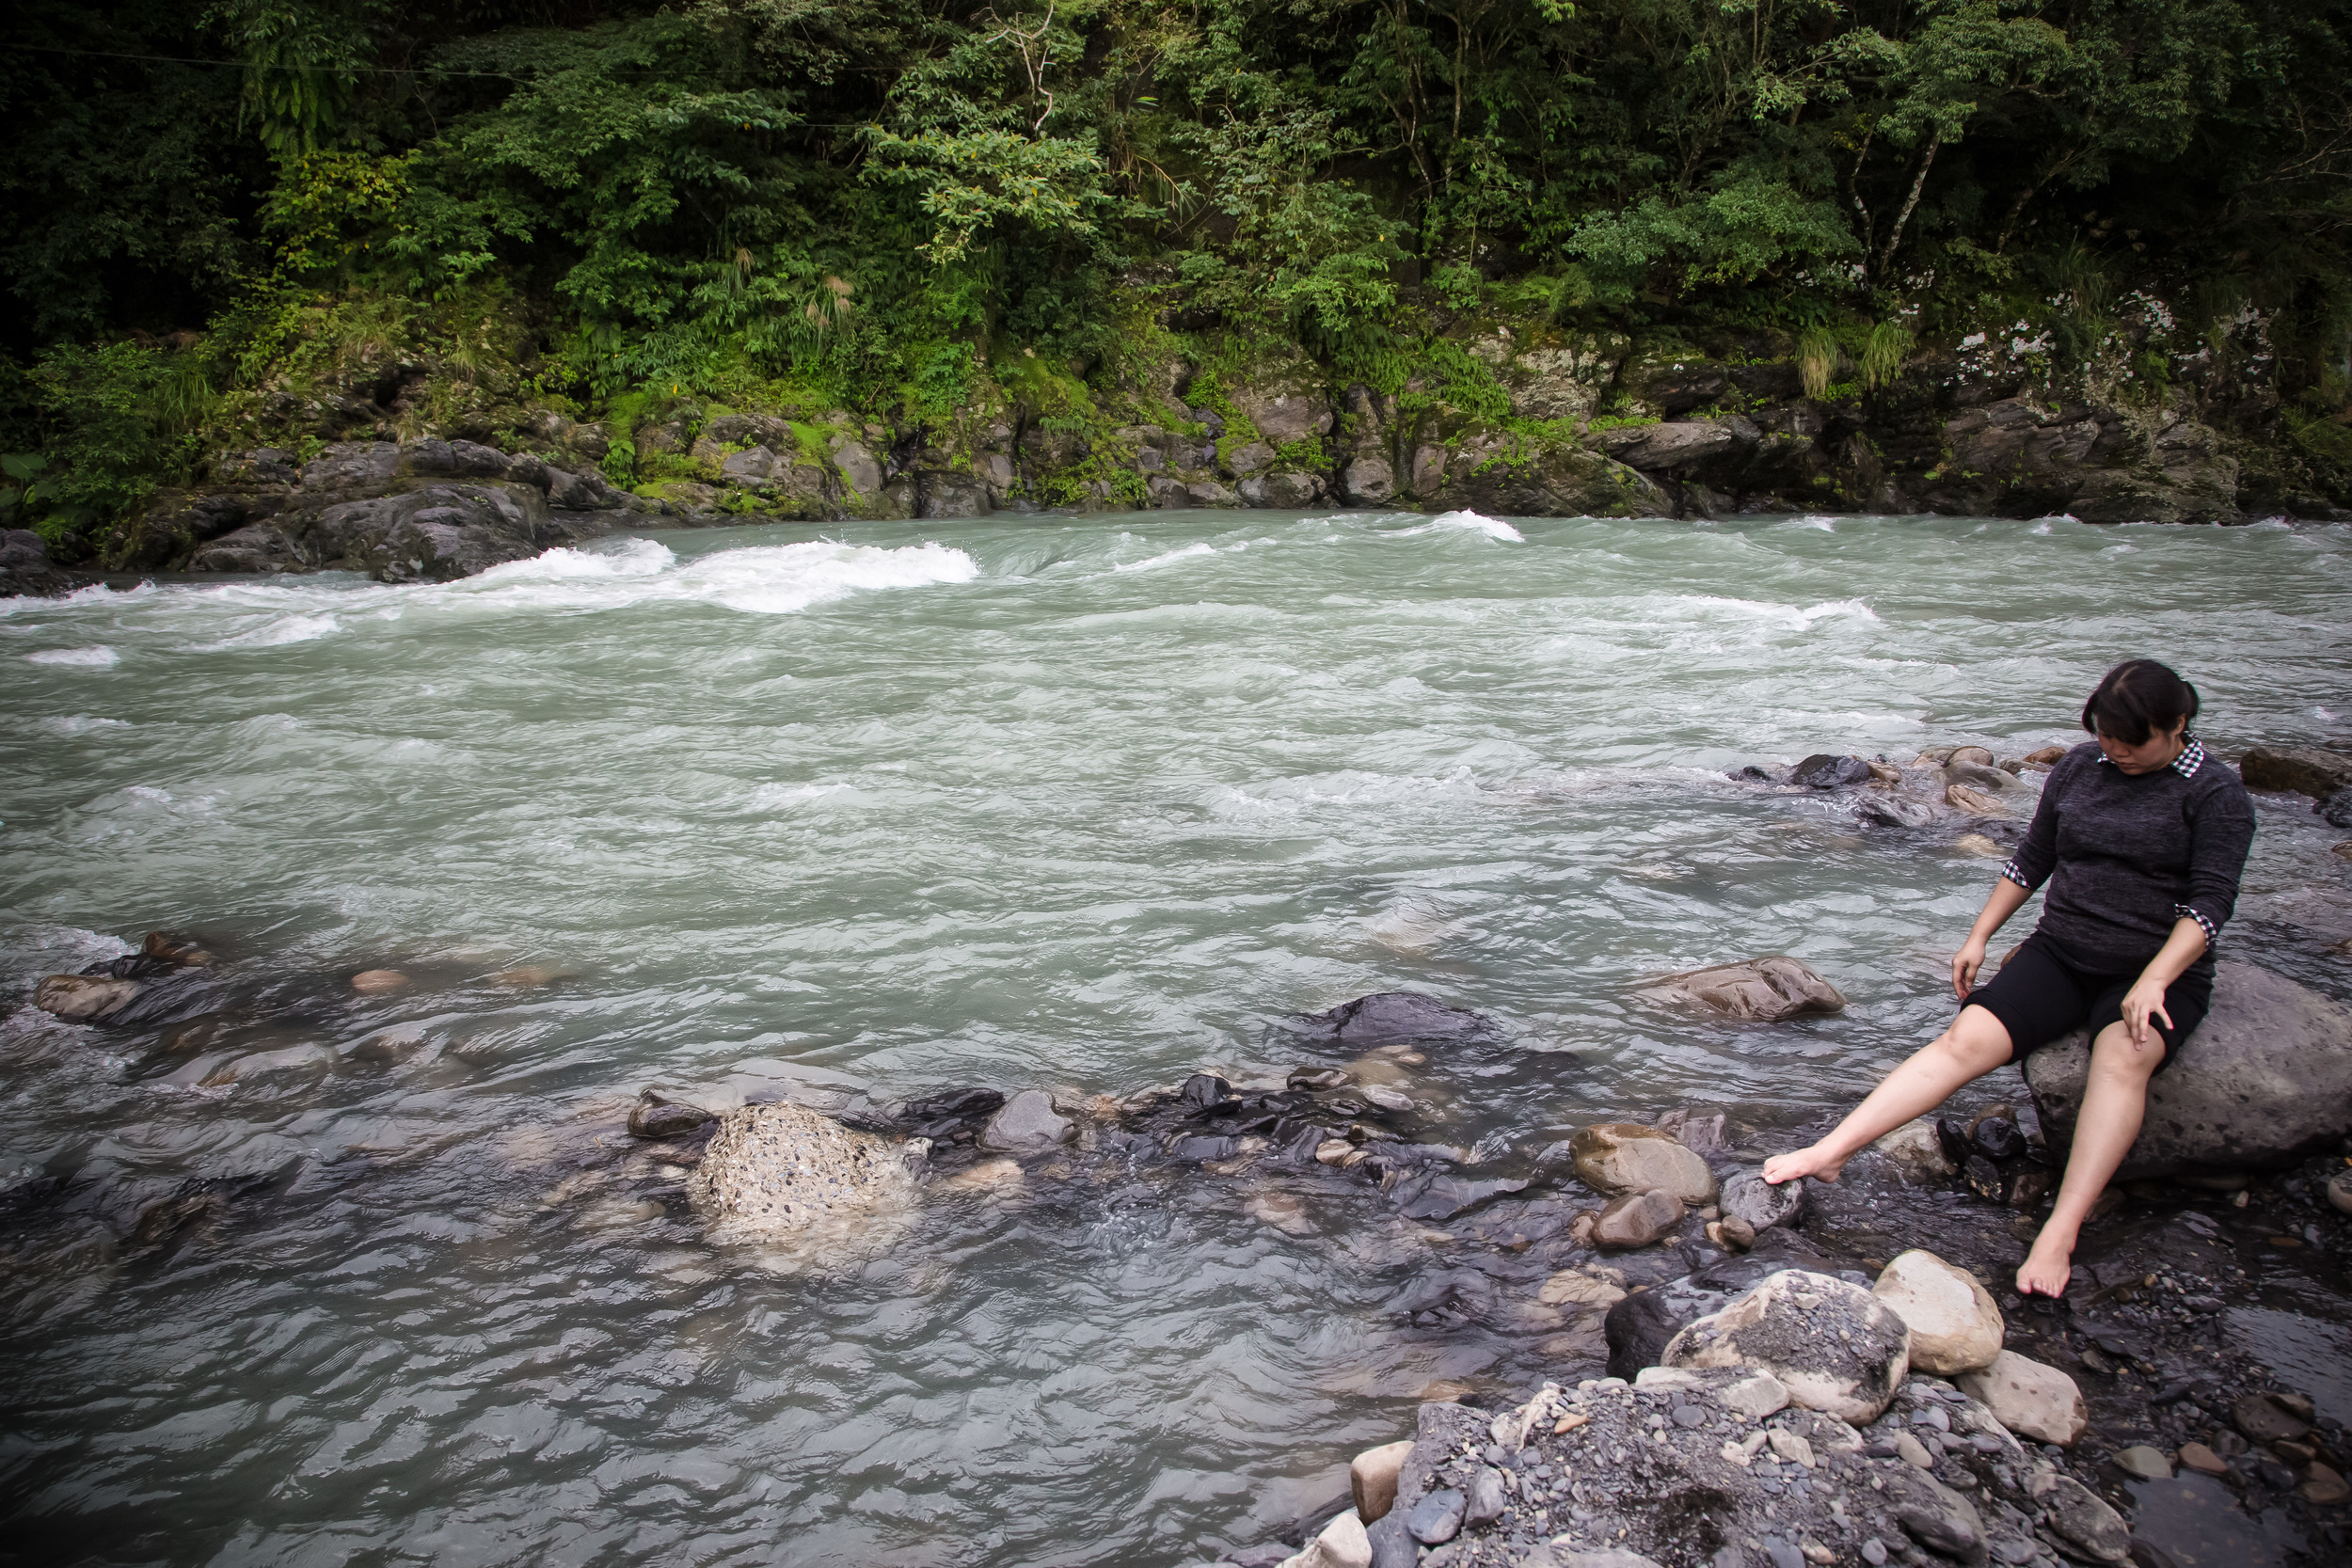 A Taiwanese woman dipping her feet in the hot spring water